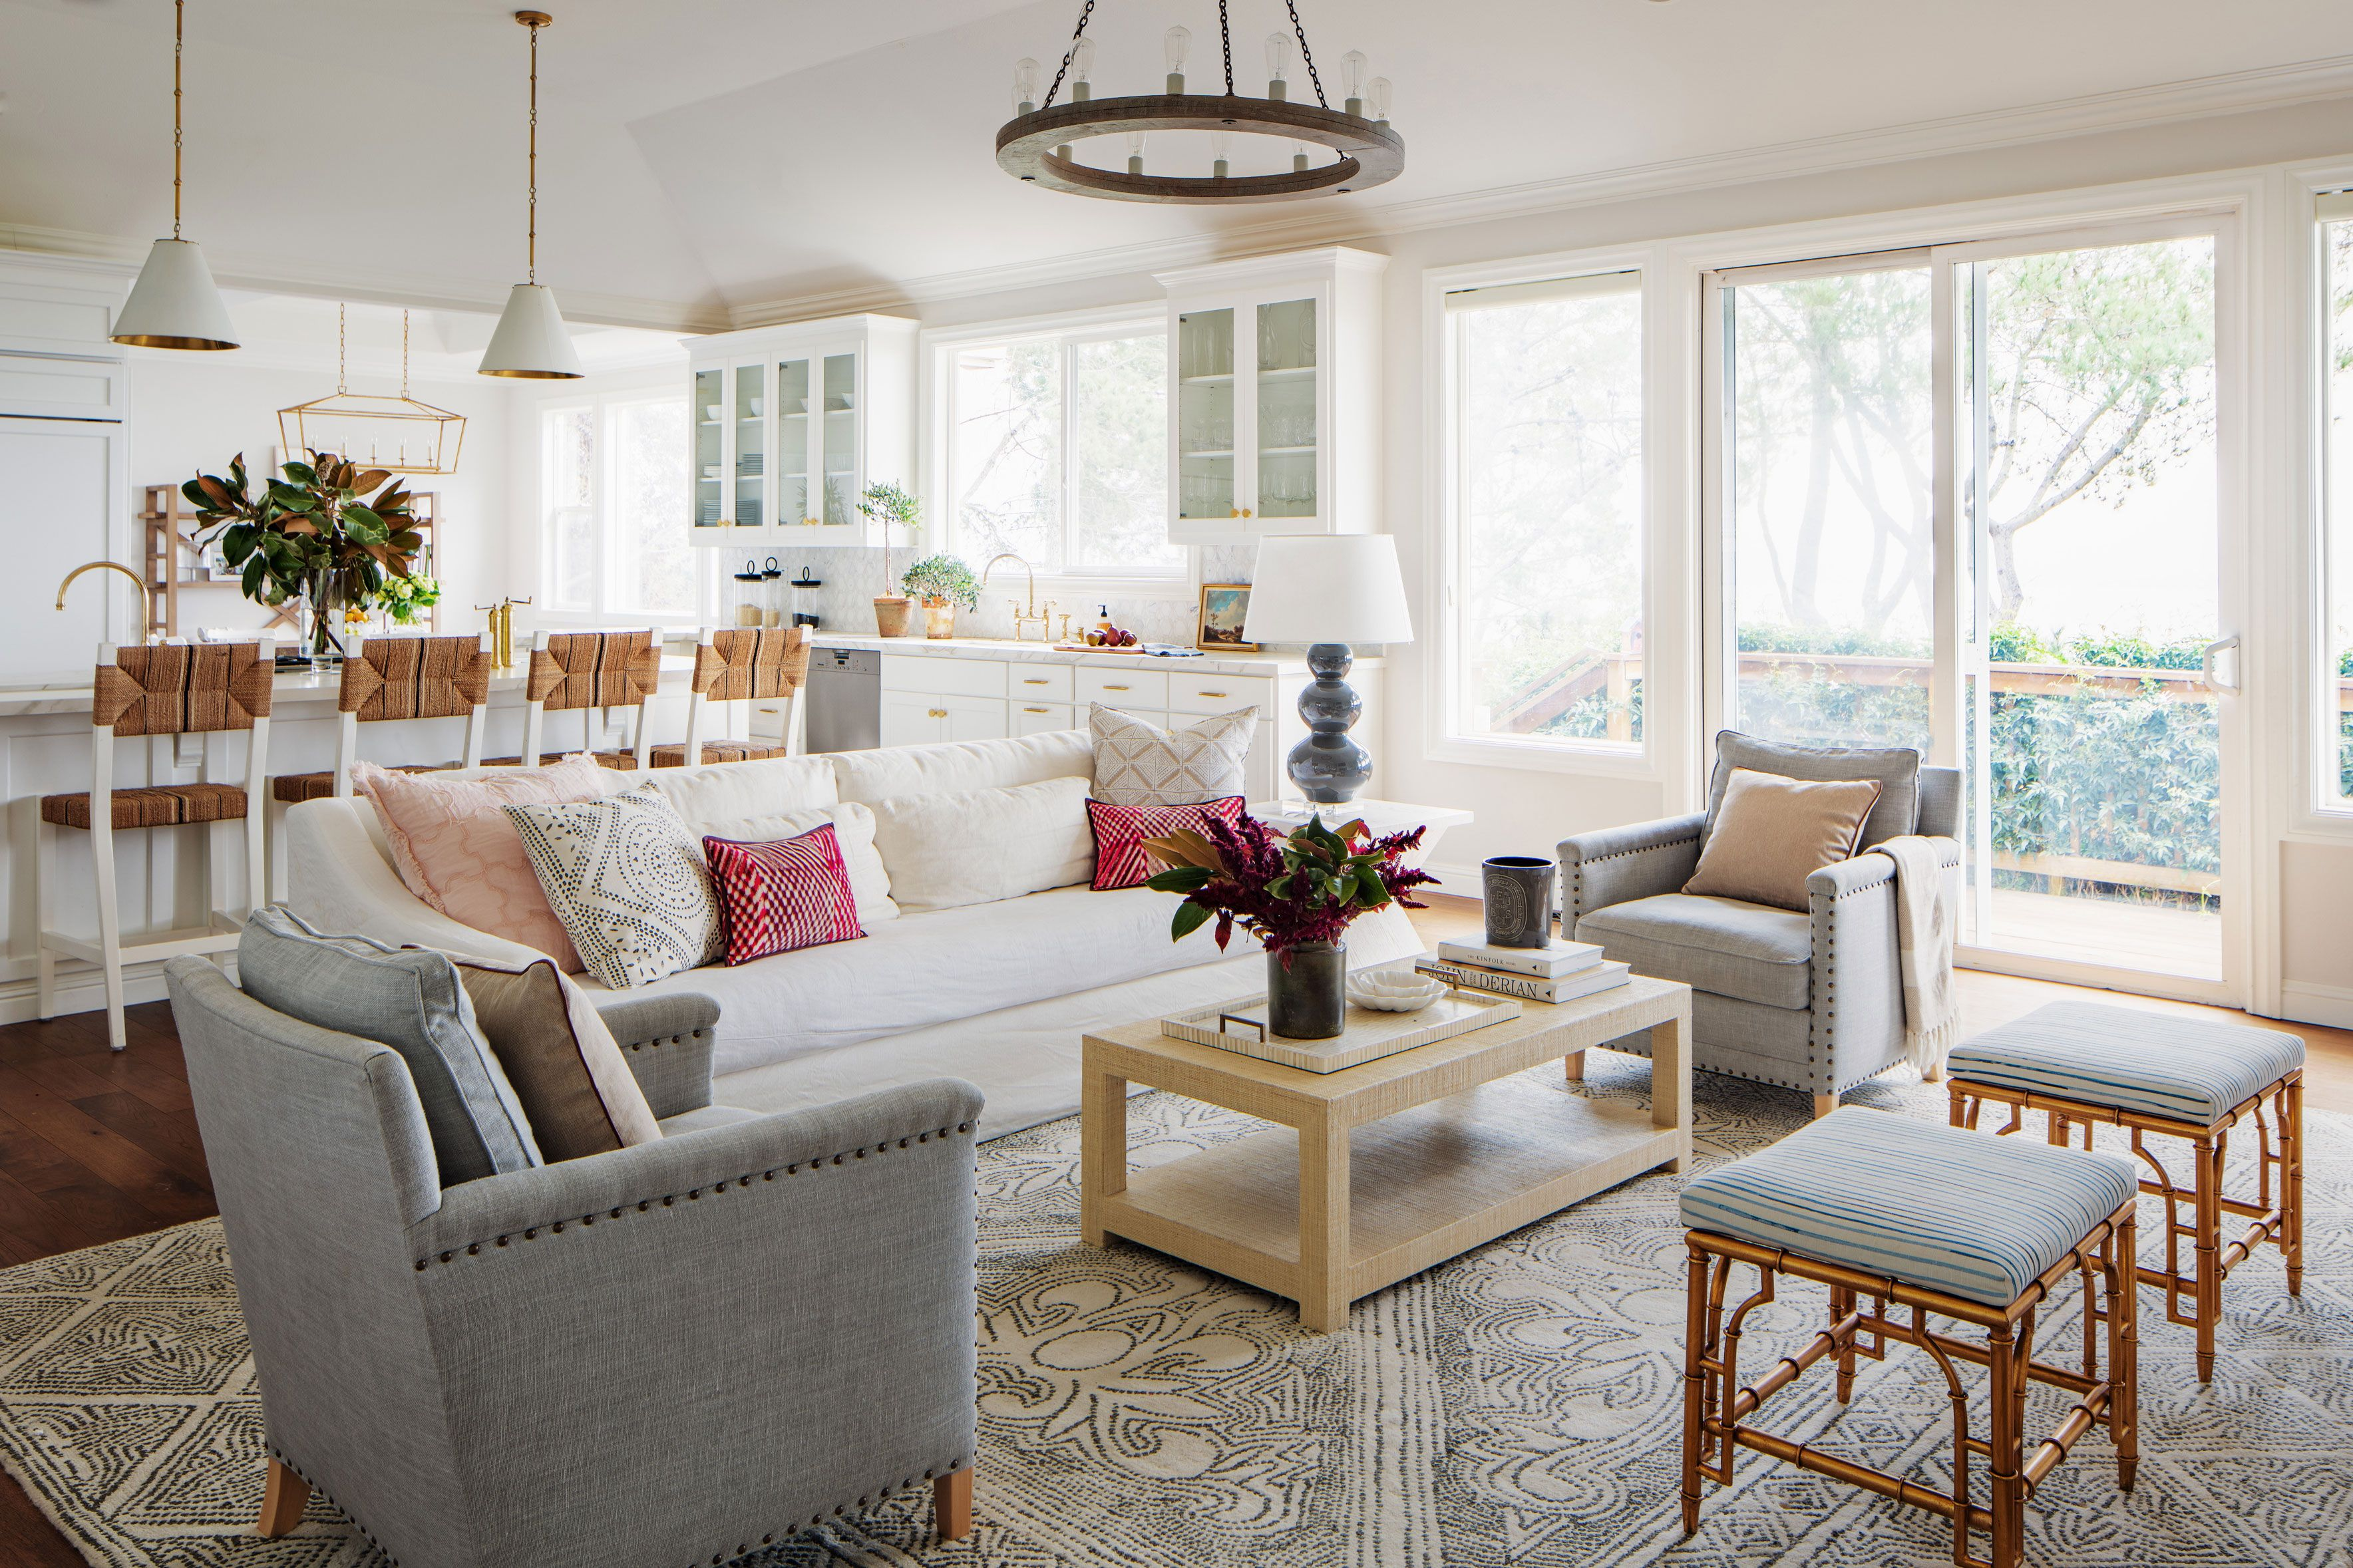 Nest Design Co.\'s Bay Area Home Proves Blue Is a Neutral